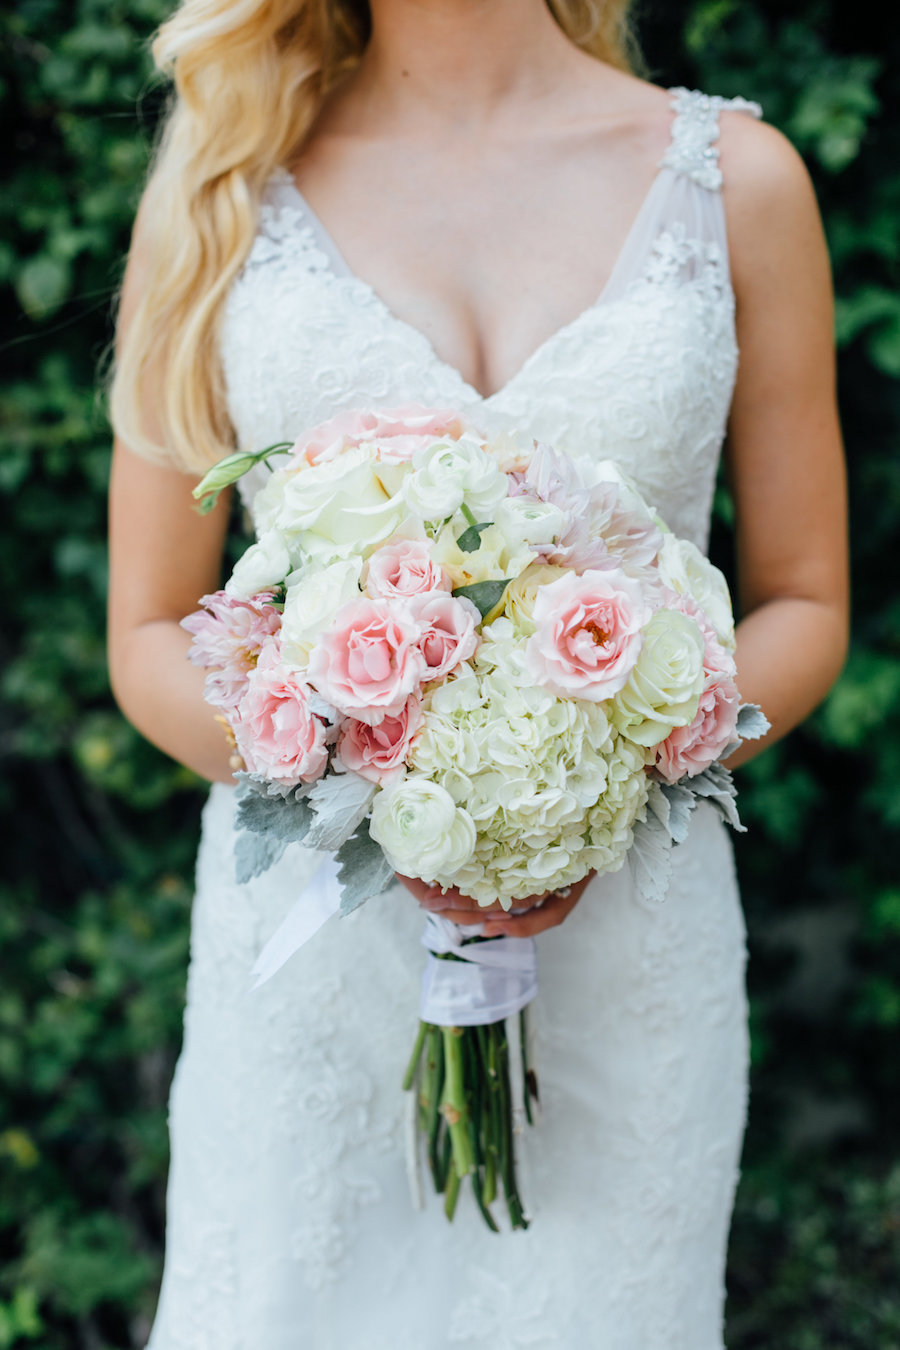 Lace Wedding Dress And Pink Rose And White Hydrangea Bridal